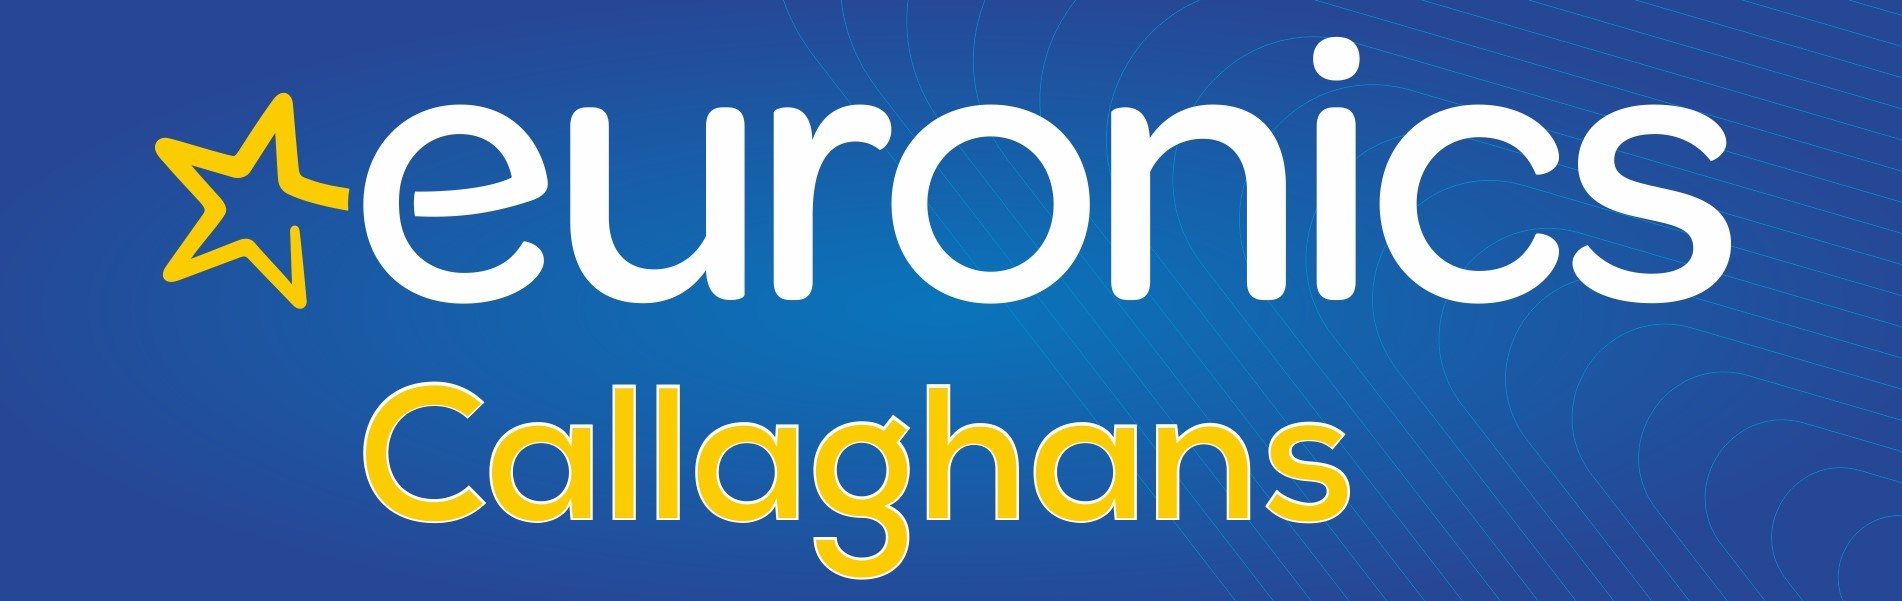 Callaghans Euronics Main Logo